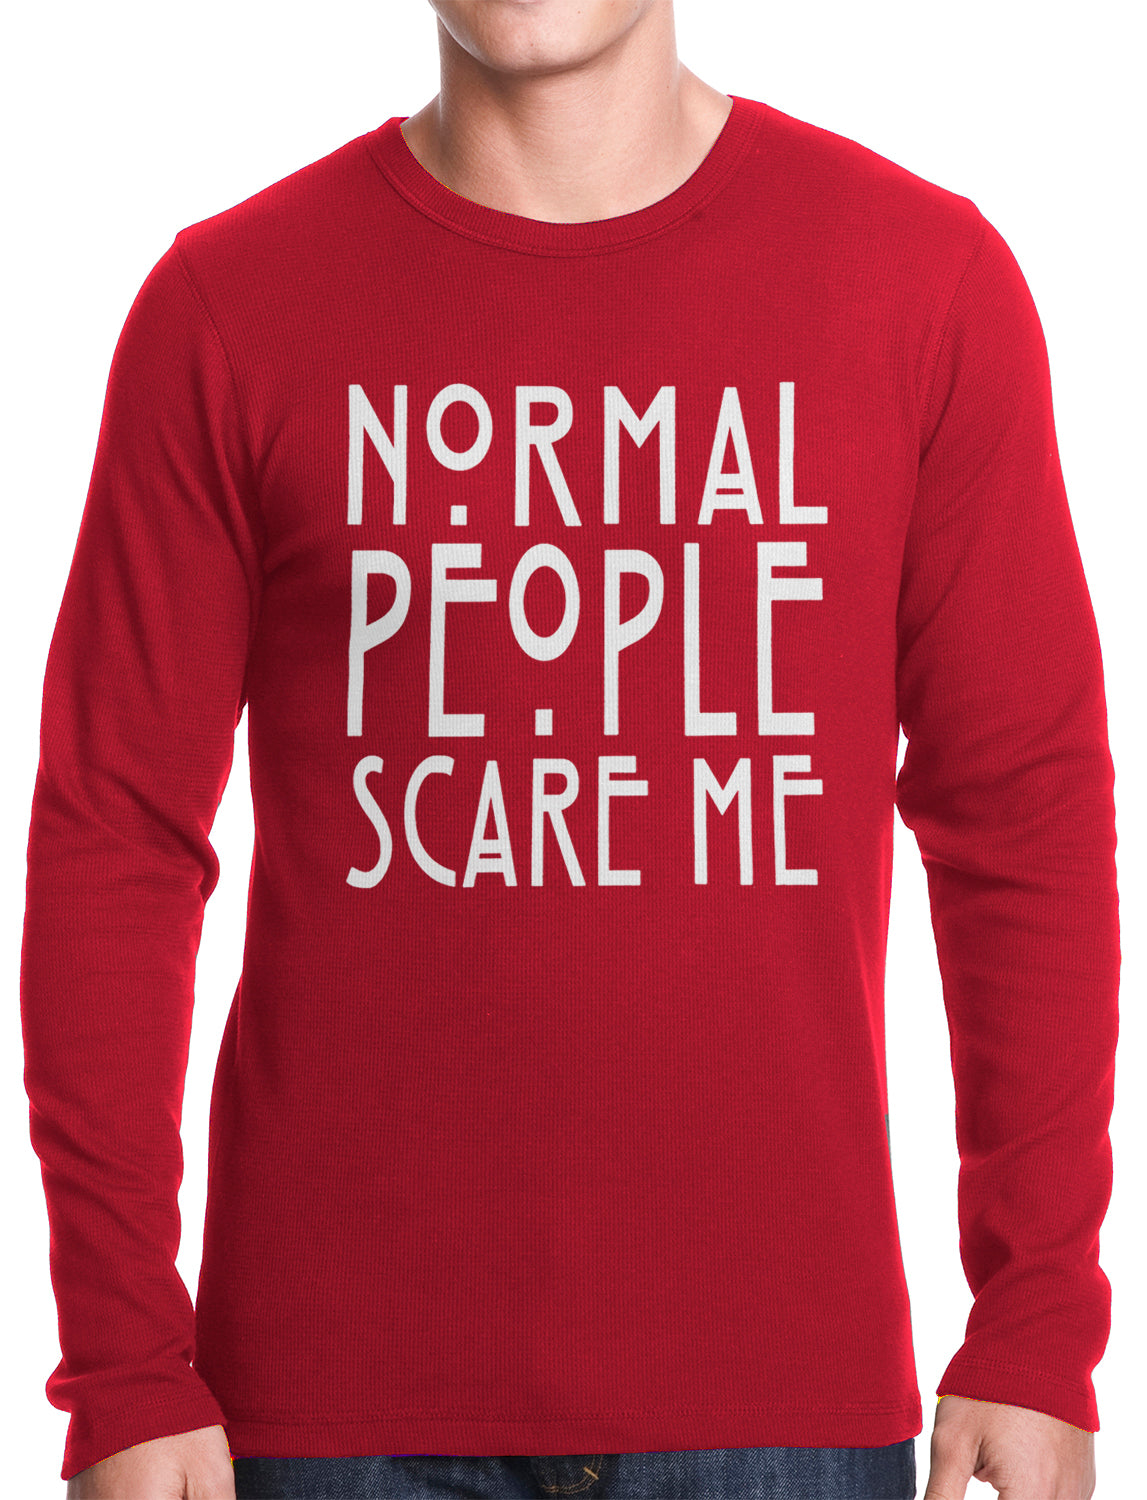 Normal People Scare Me Thermal Shirt